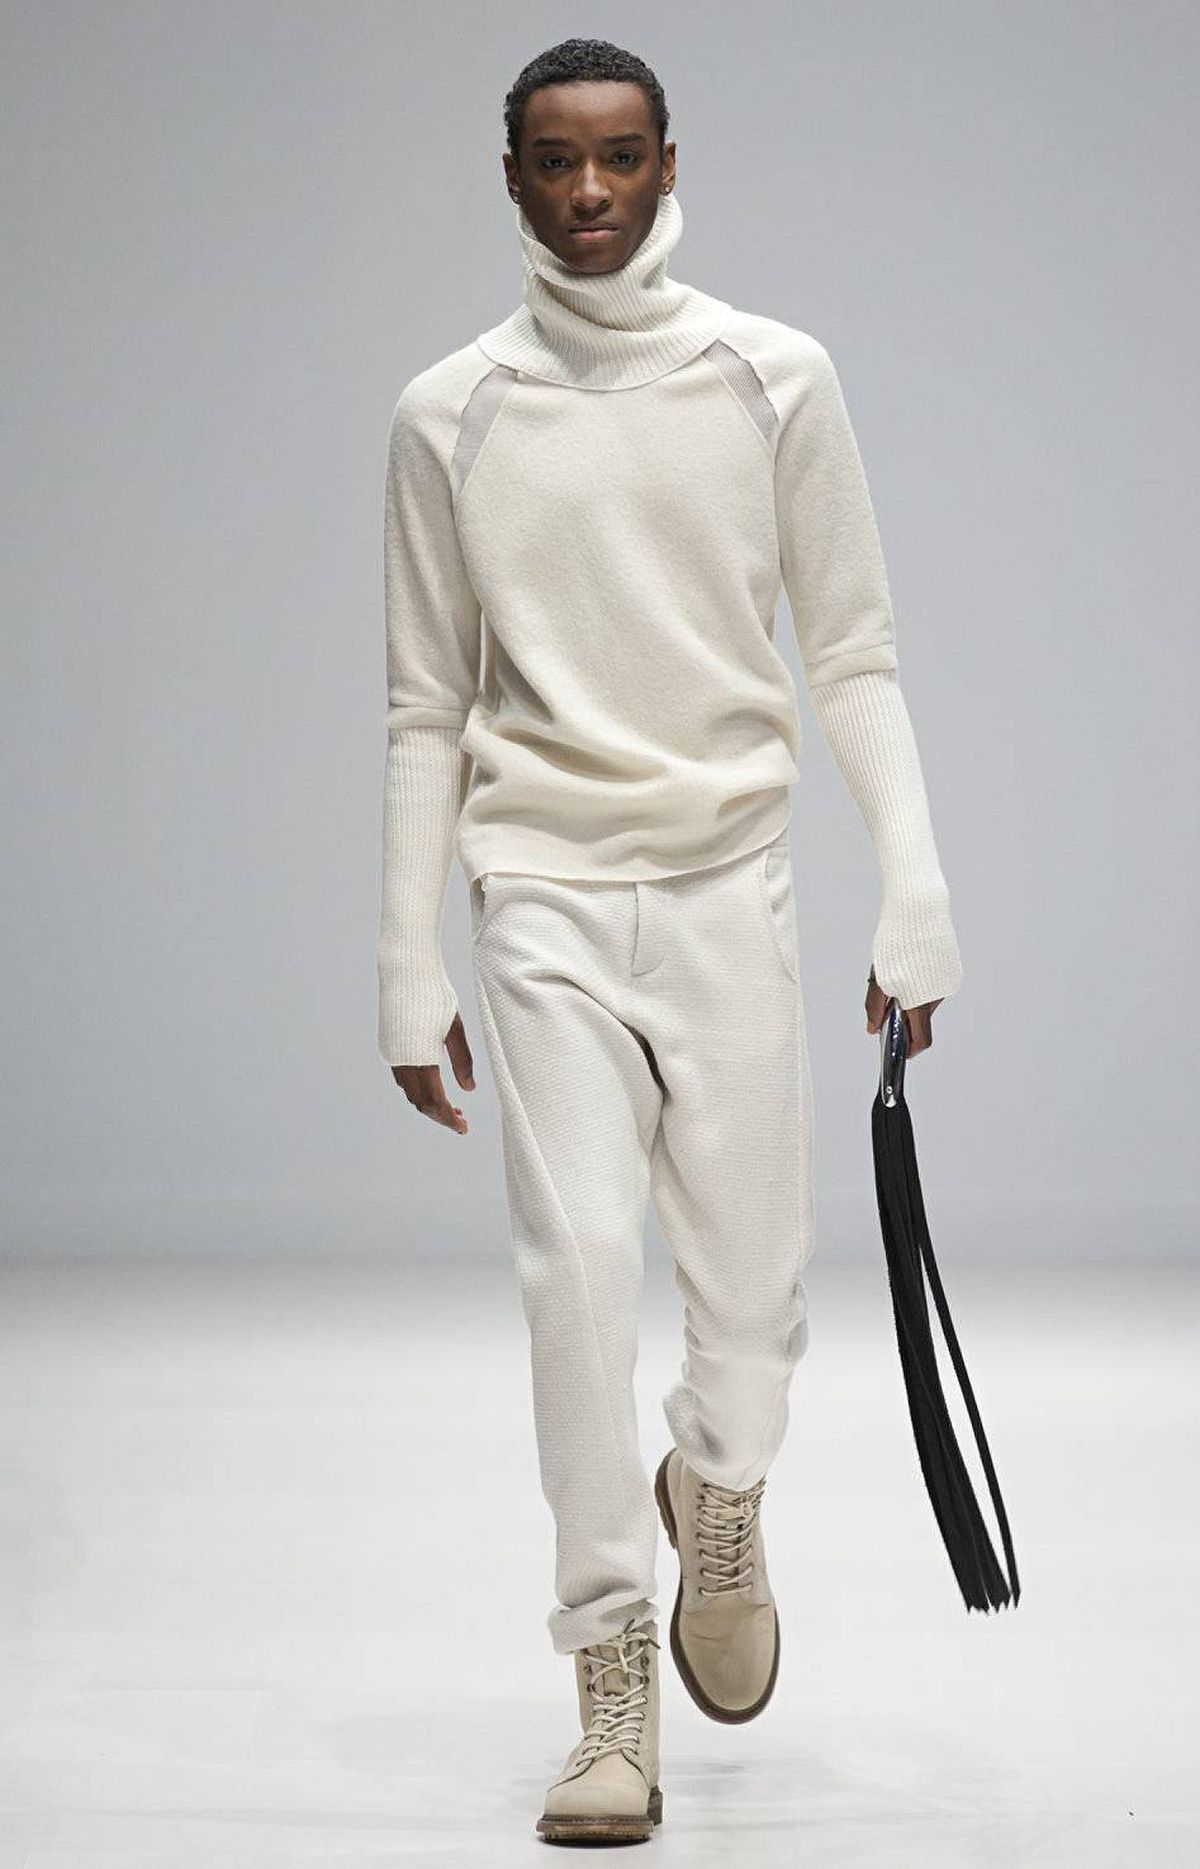 Playing with textures beyond soft cotton and jersey and new shapes proved a smart move for the duo. Knits were joined by boiled and square-woven wools, most notably in form of trousers draped like sweat pants.